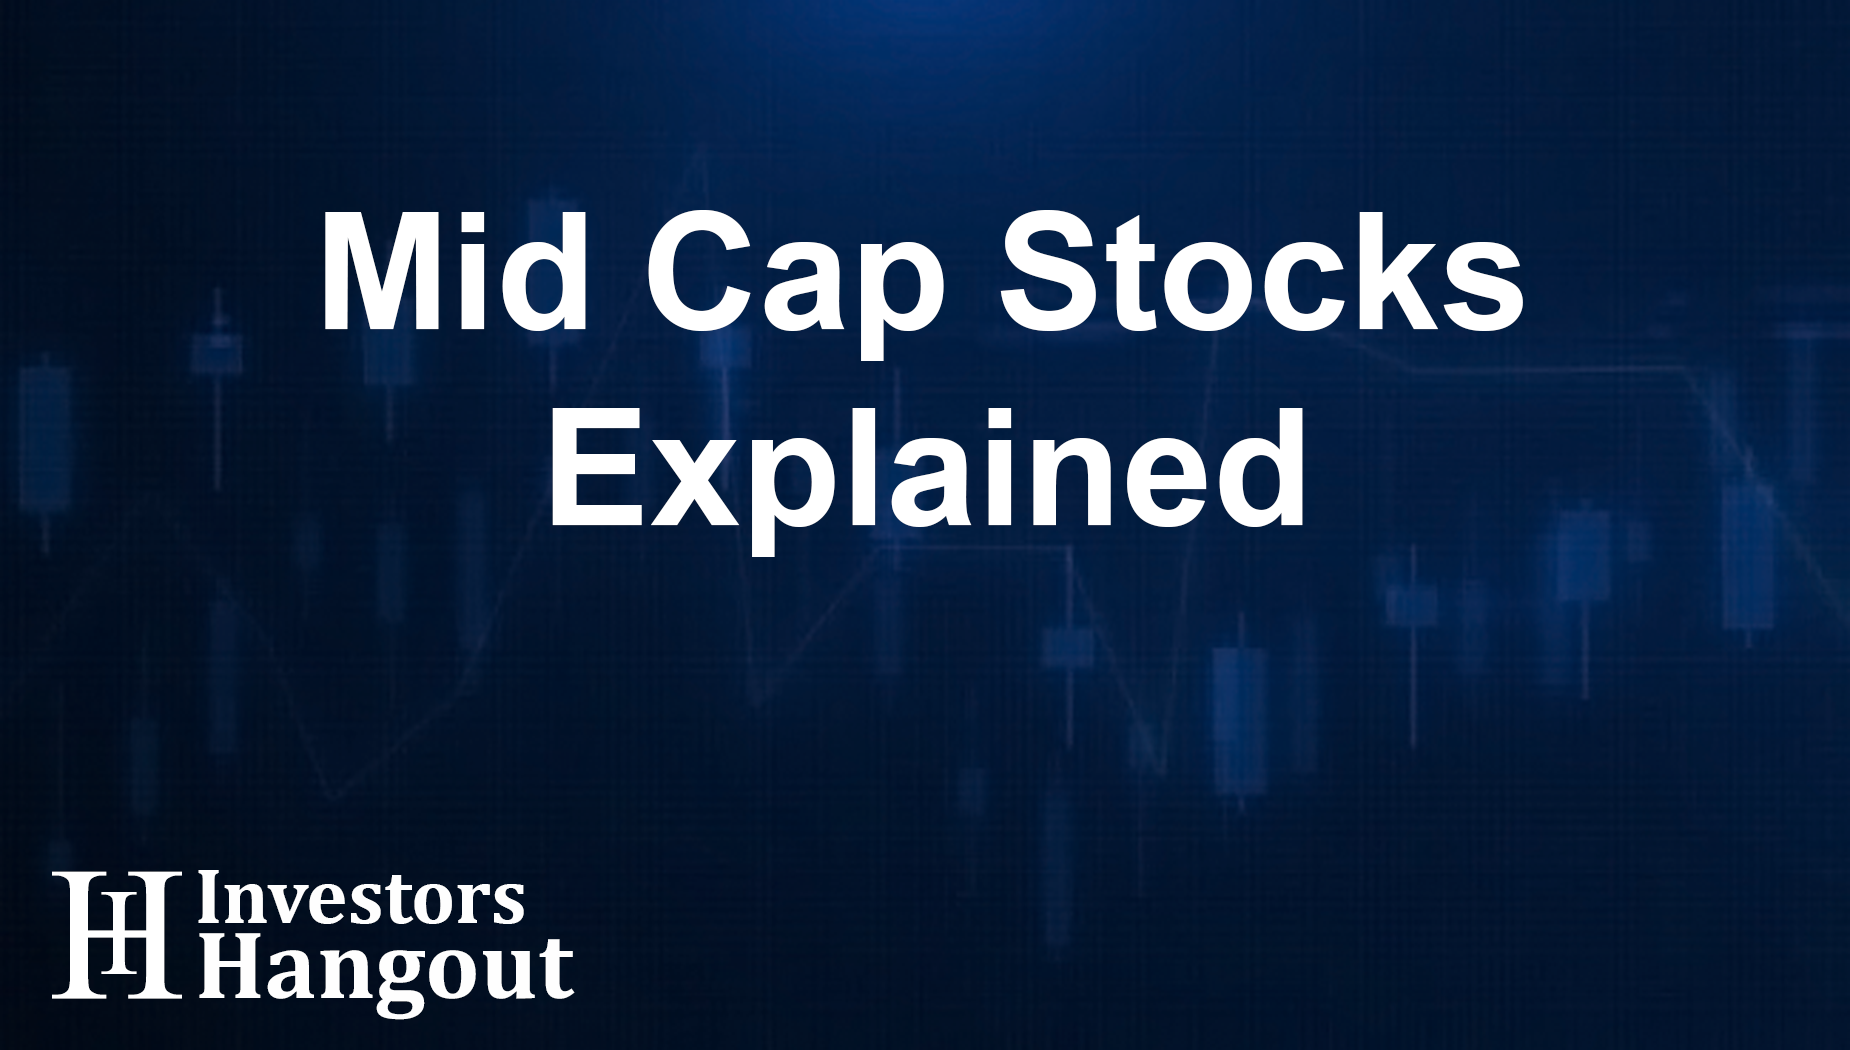 Mid Cap Stocks Explained